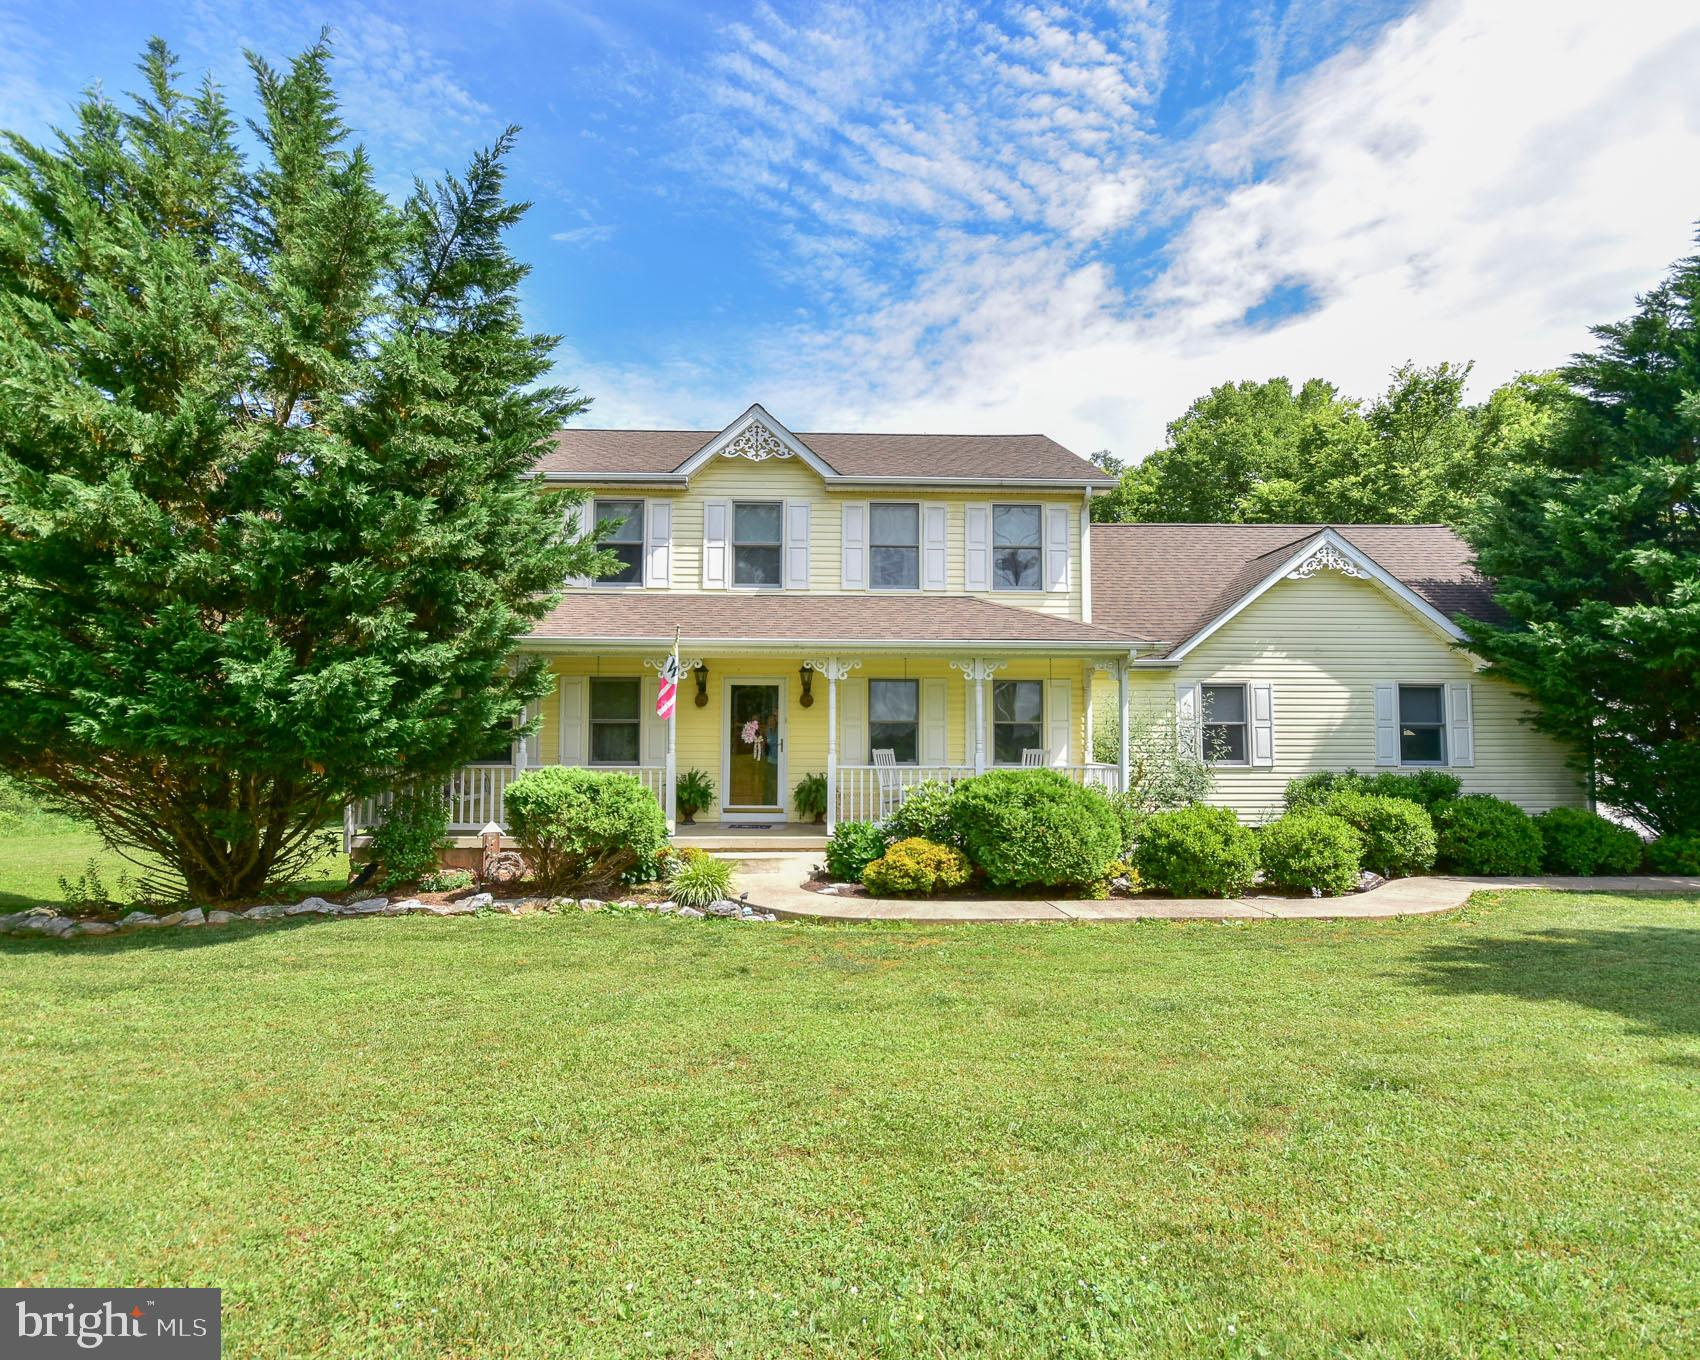 57 CAHILL COURT, INWOOD, WV 25428